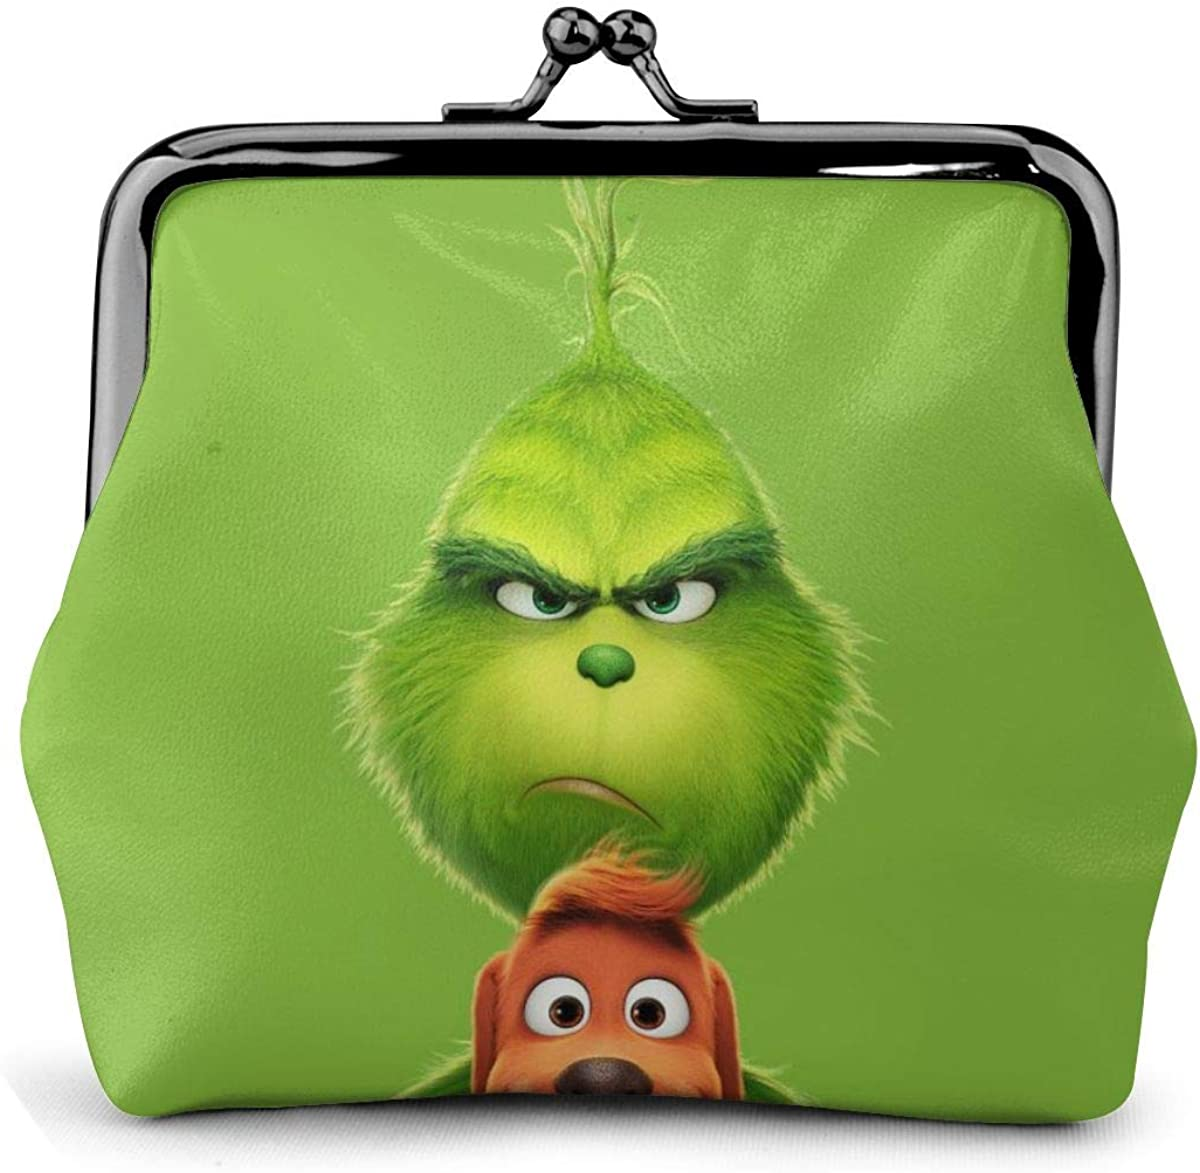 Max 45% OFF Free Shipping New The Grinch Coin Purse,Womens Wallet PU Bag Clutch Retro Ladies